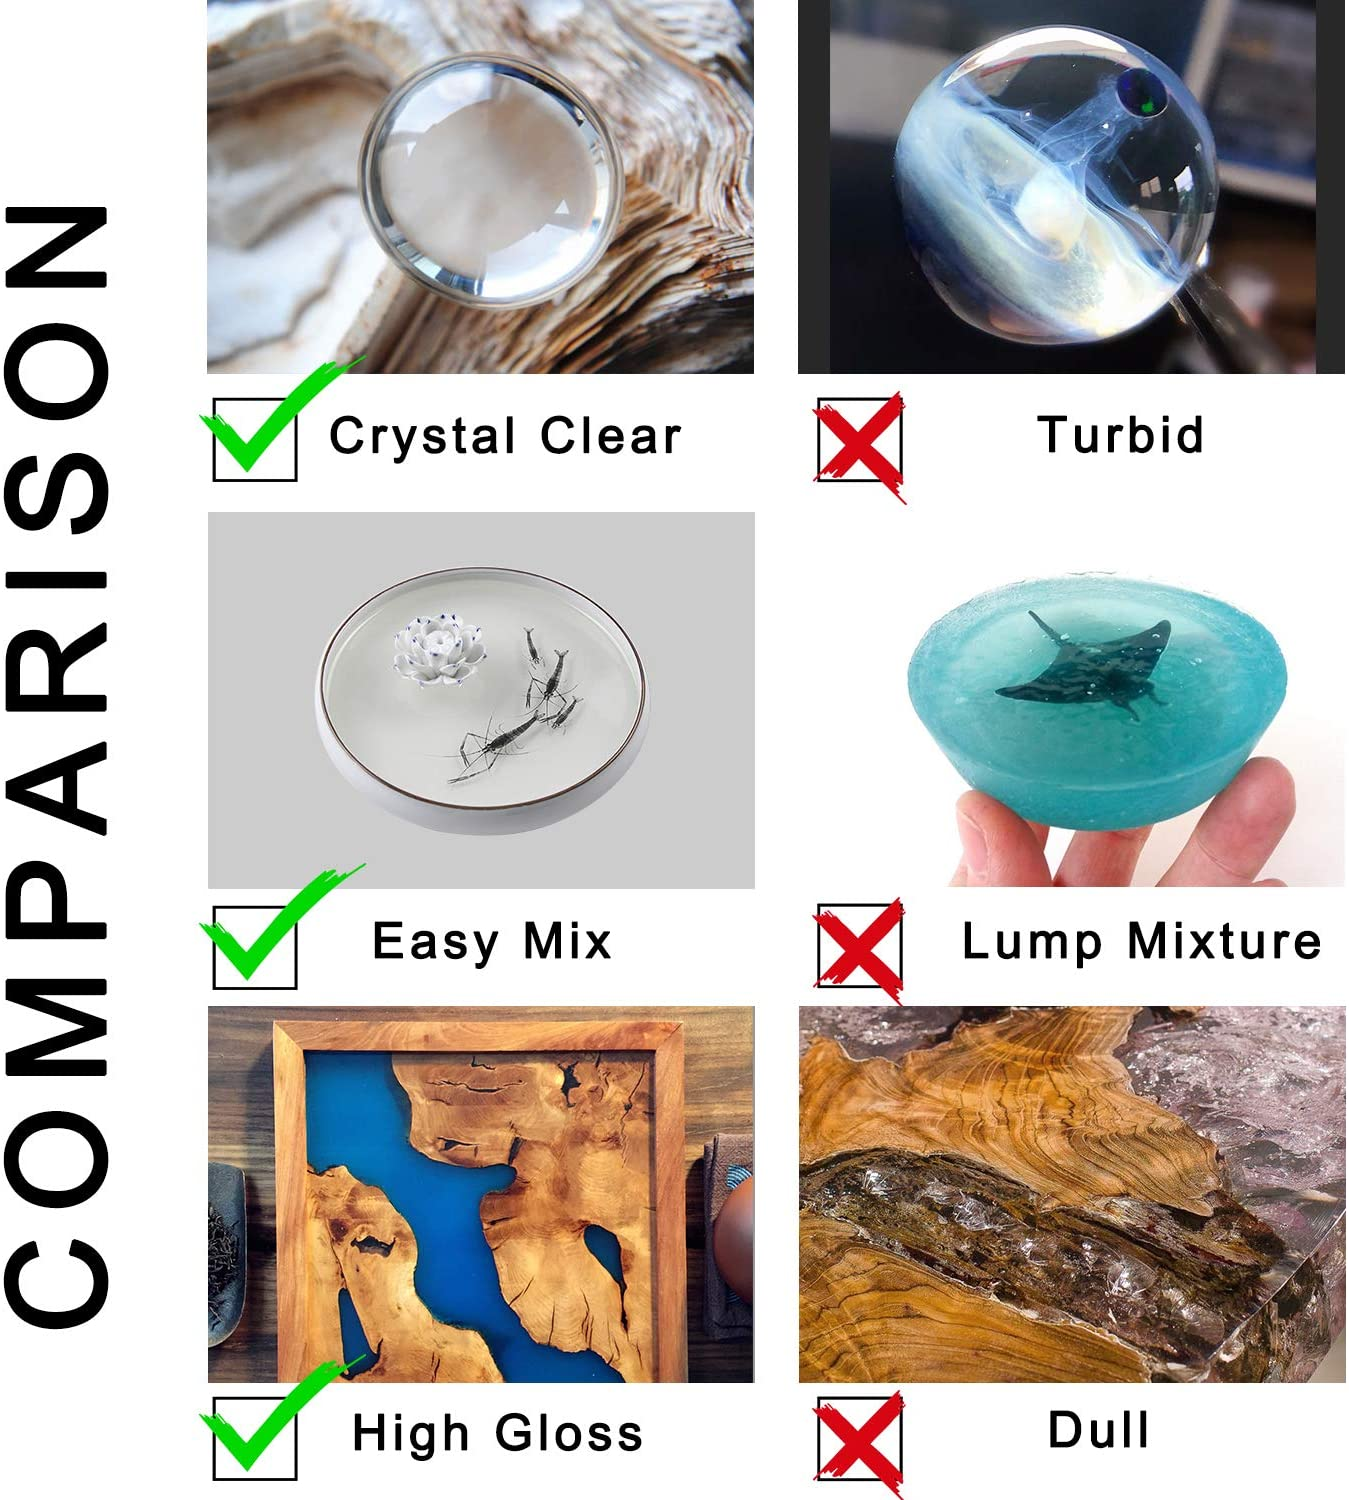 Epoxy Resin Kit - 34 oz Crystal Clear Epoxy Resin for Art Coating Casting Jewelry Making Safe - Craft Resin Starter Kit